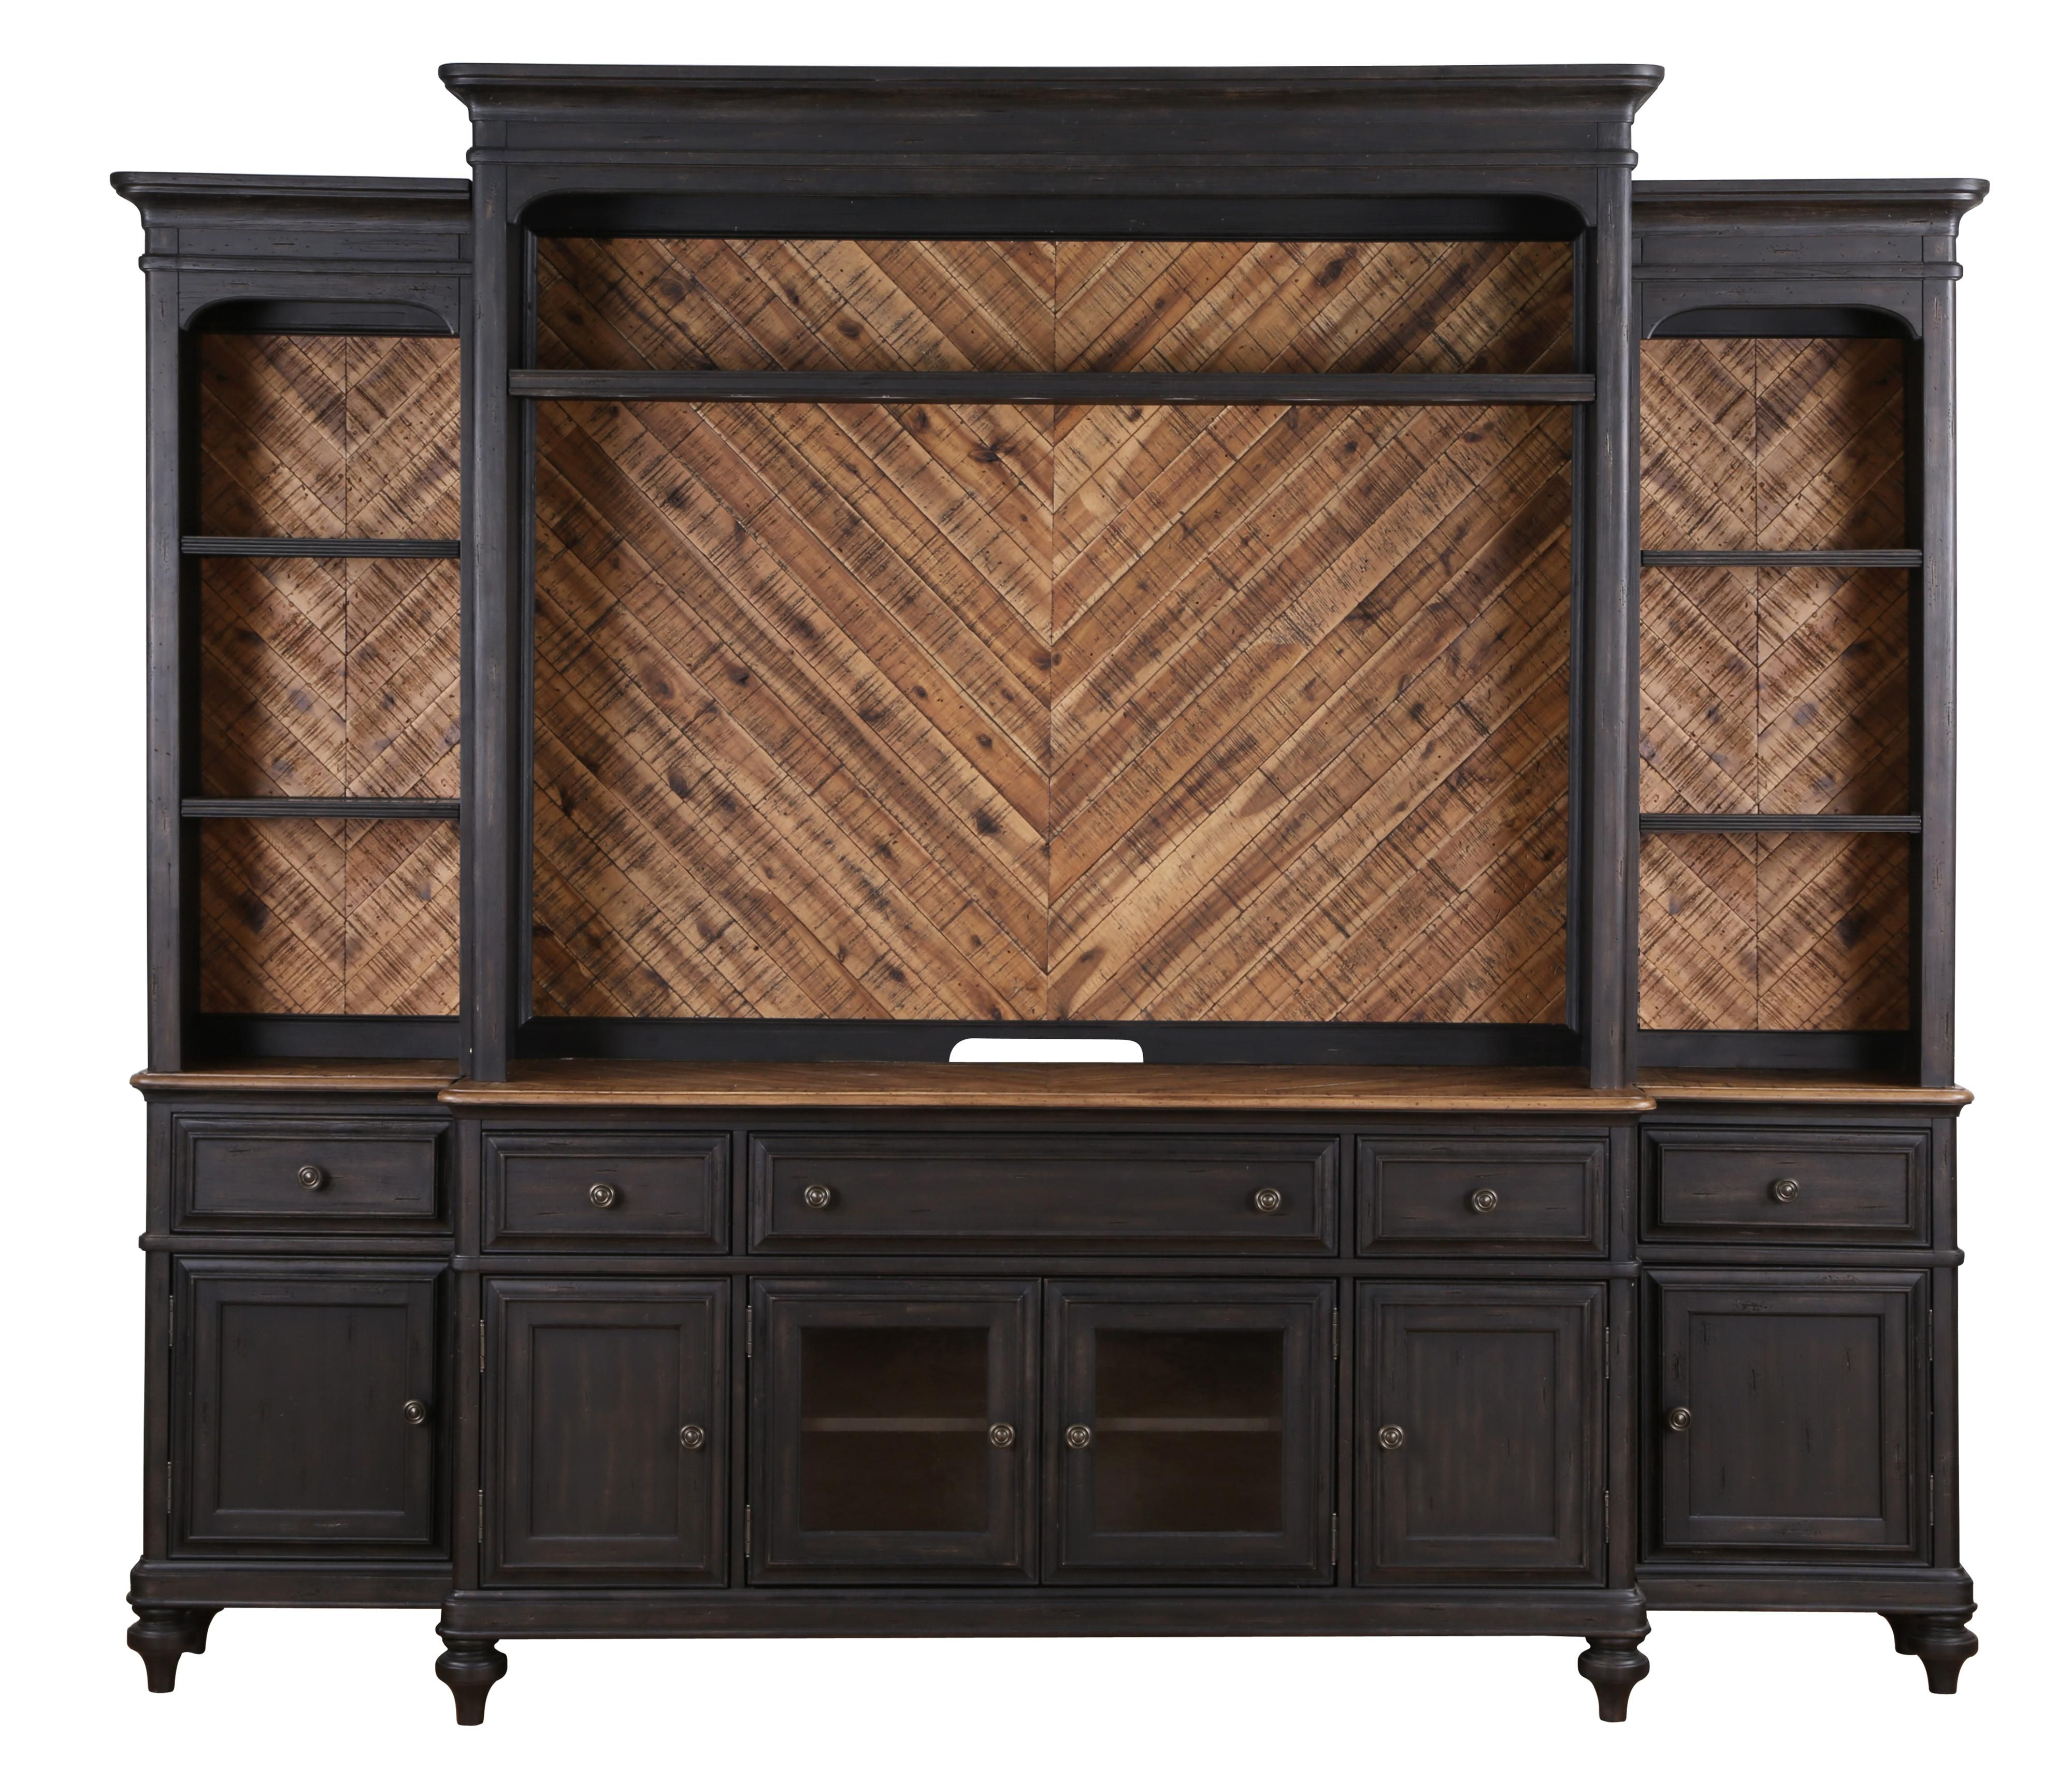 Superb Entertainment Wall Unit With Display Touch Lighting